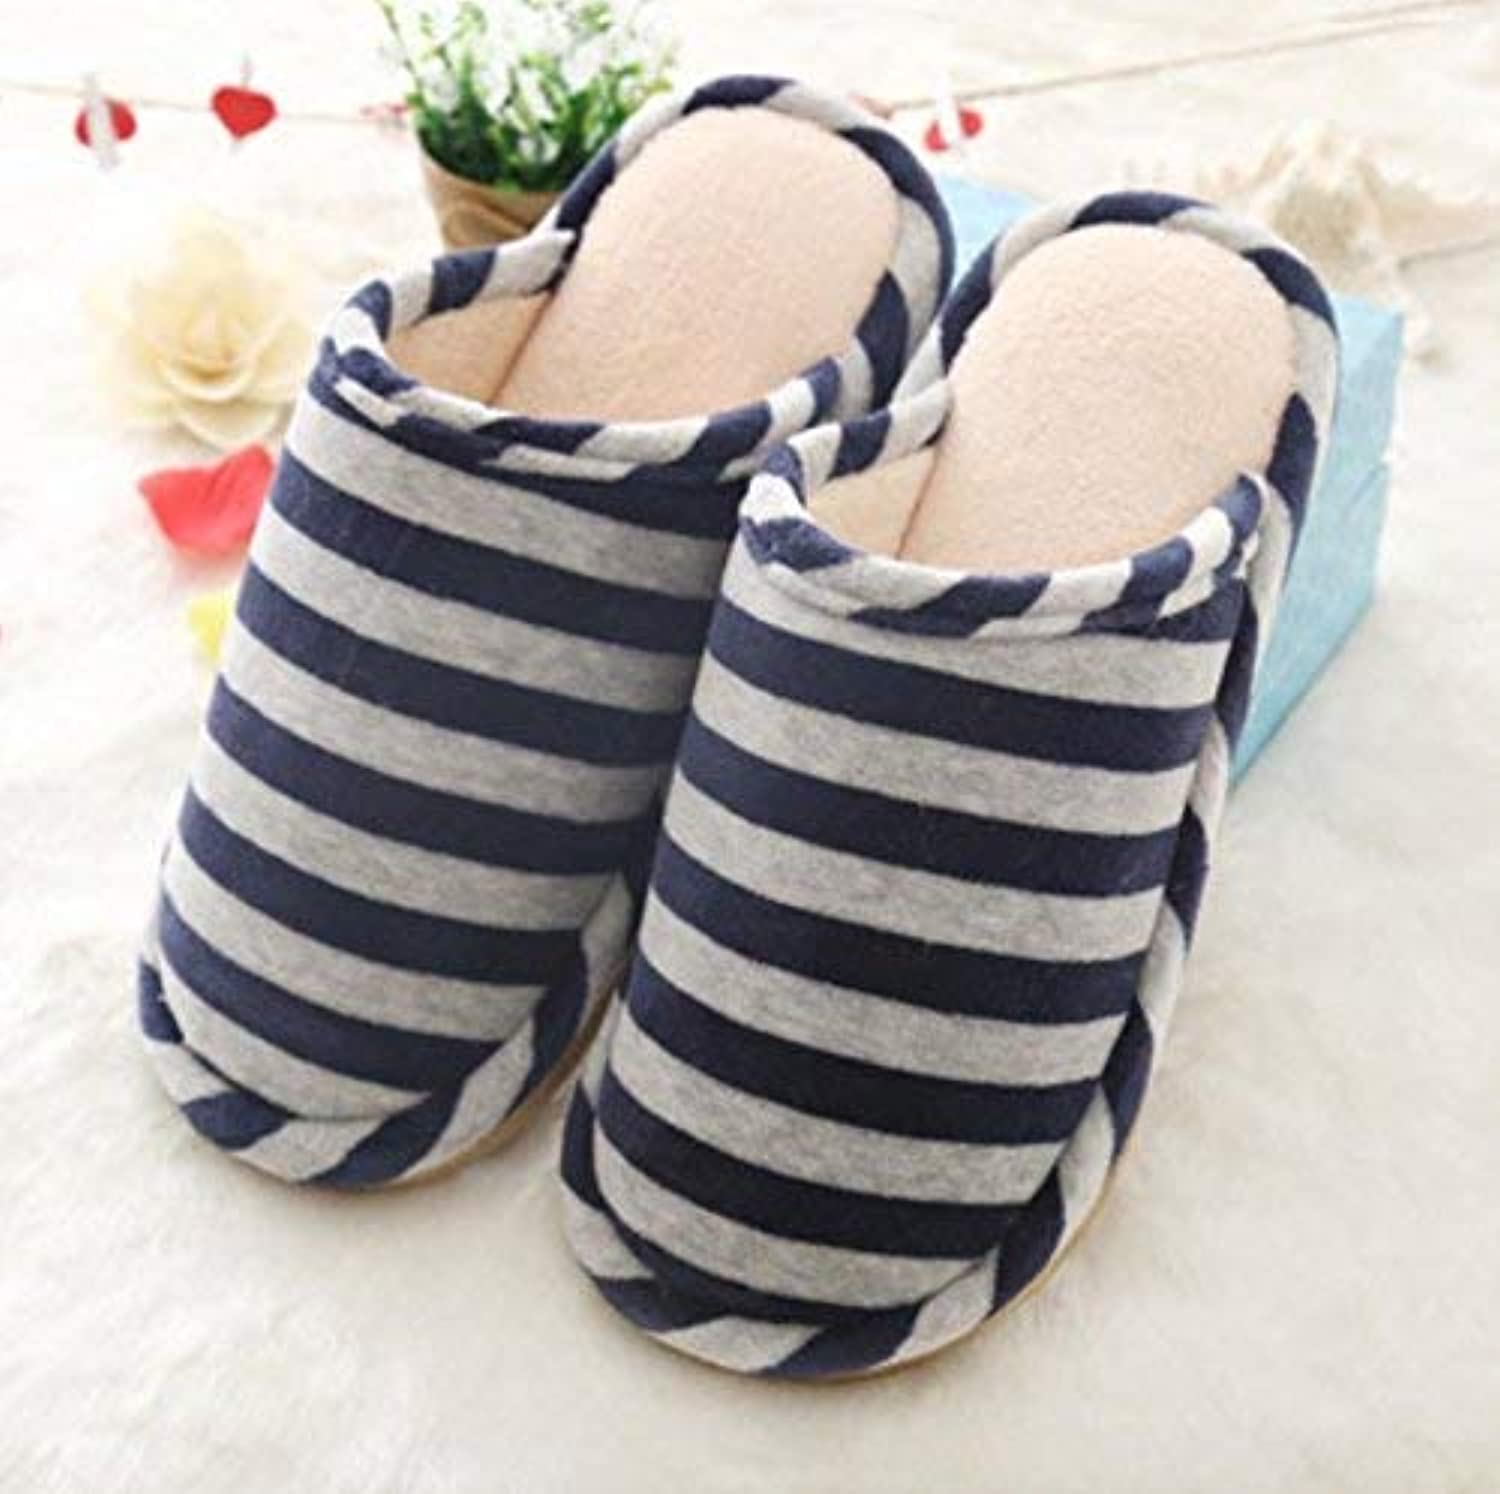 Men 's Home Cotton Slippers Indoor Keep Warm Casual Slippers Mixed color Personality Quality bluee for Men Stripe